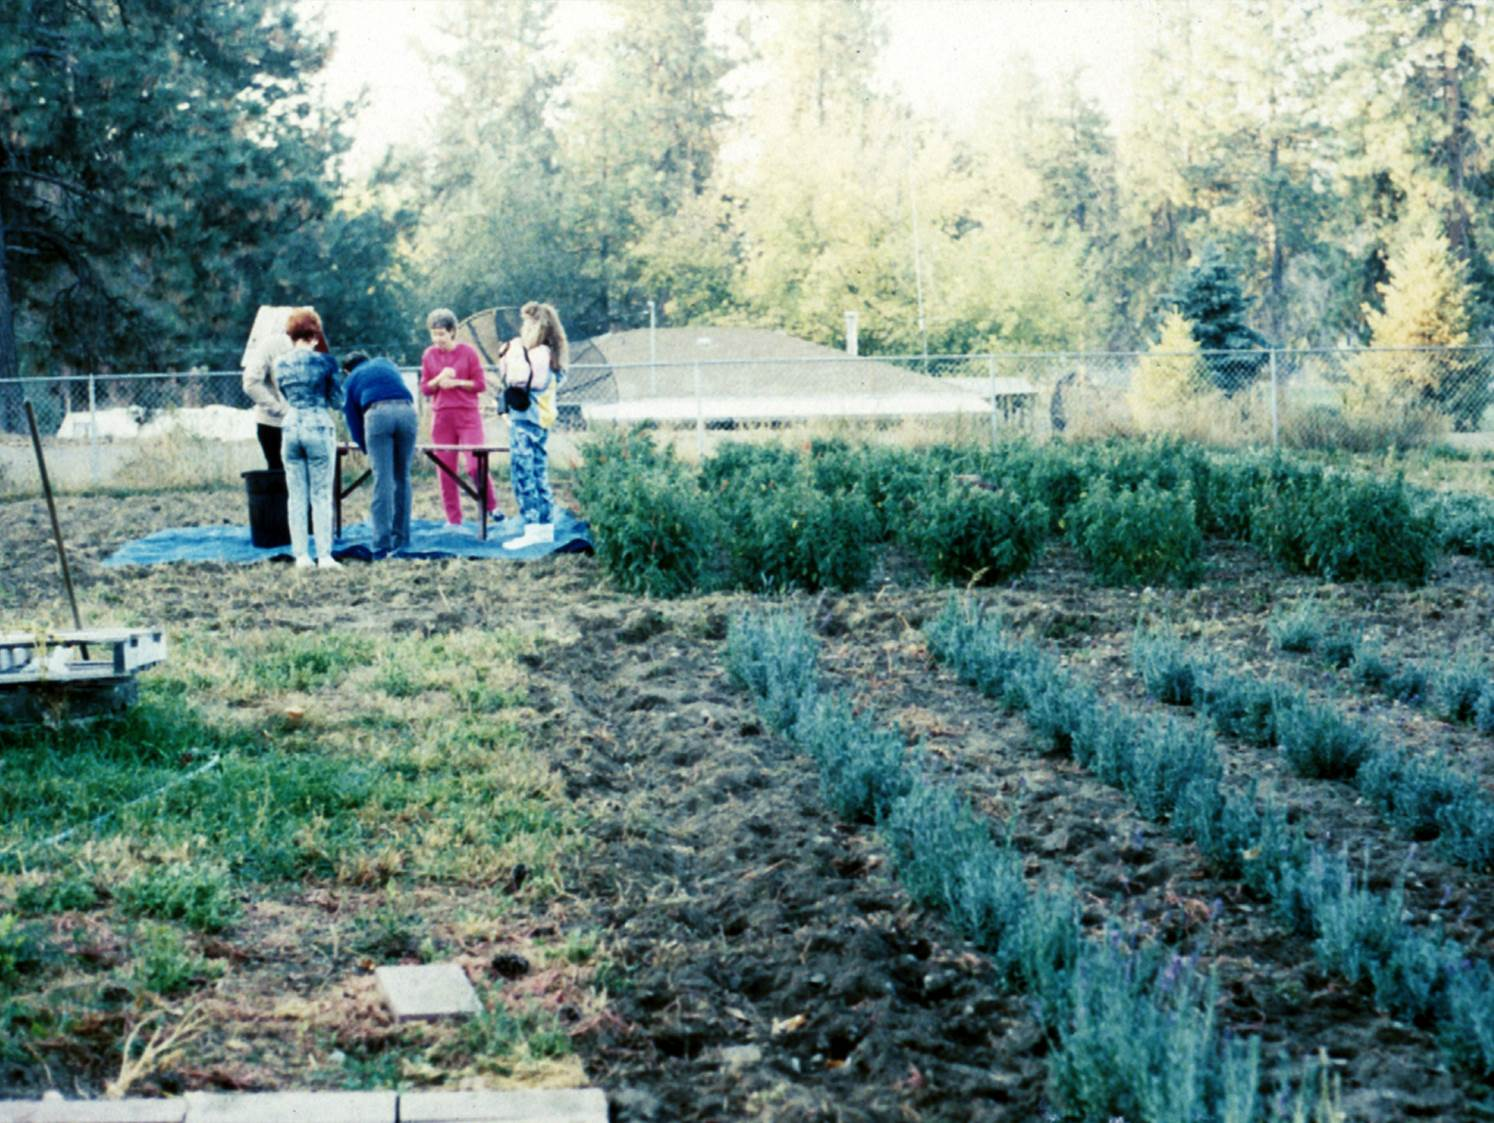 It all started here in Spokane, Washington, on a quarter-acre plot where I planted lavender seeds I brought from France.